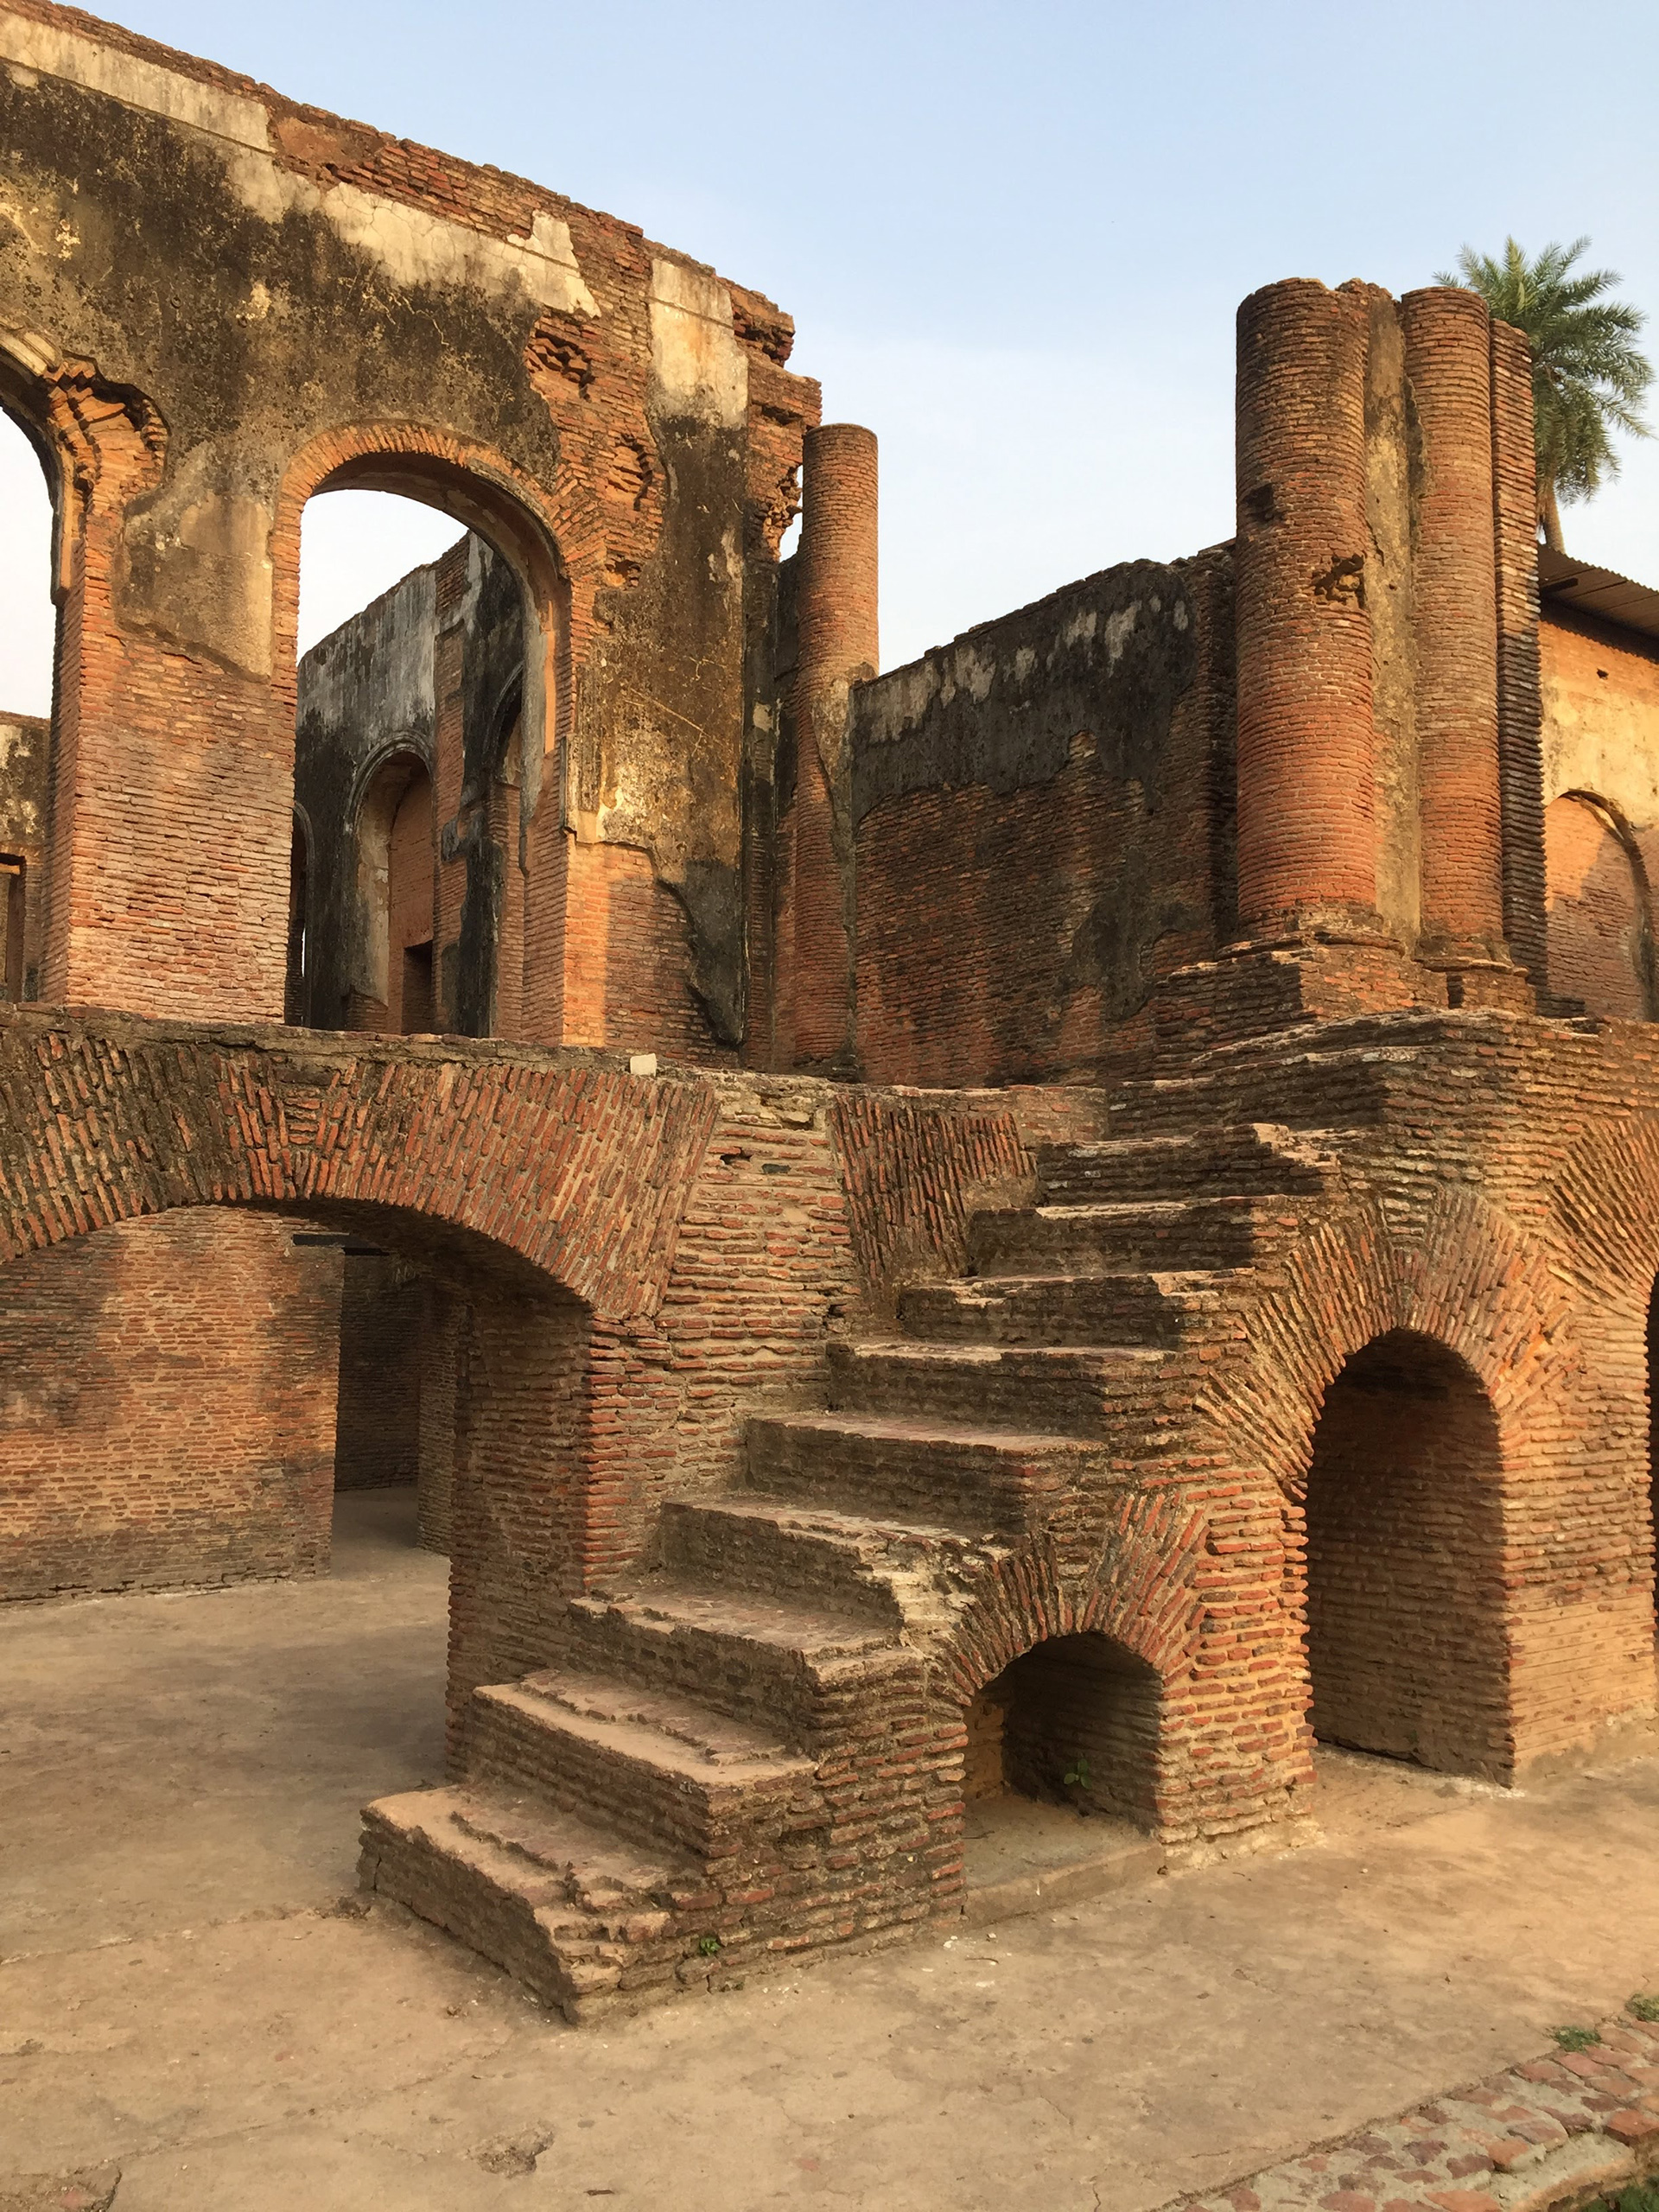 When layers of the building interior become bare to the outside without their stucco skin and stone treads, there is a new state of consequence | The Residency| Lucknow| Soumitro Ghosh| STIR